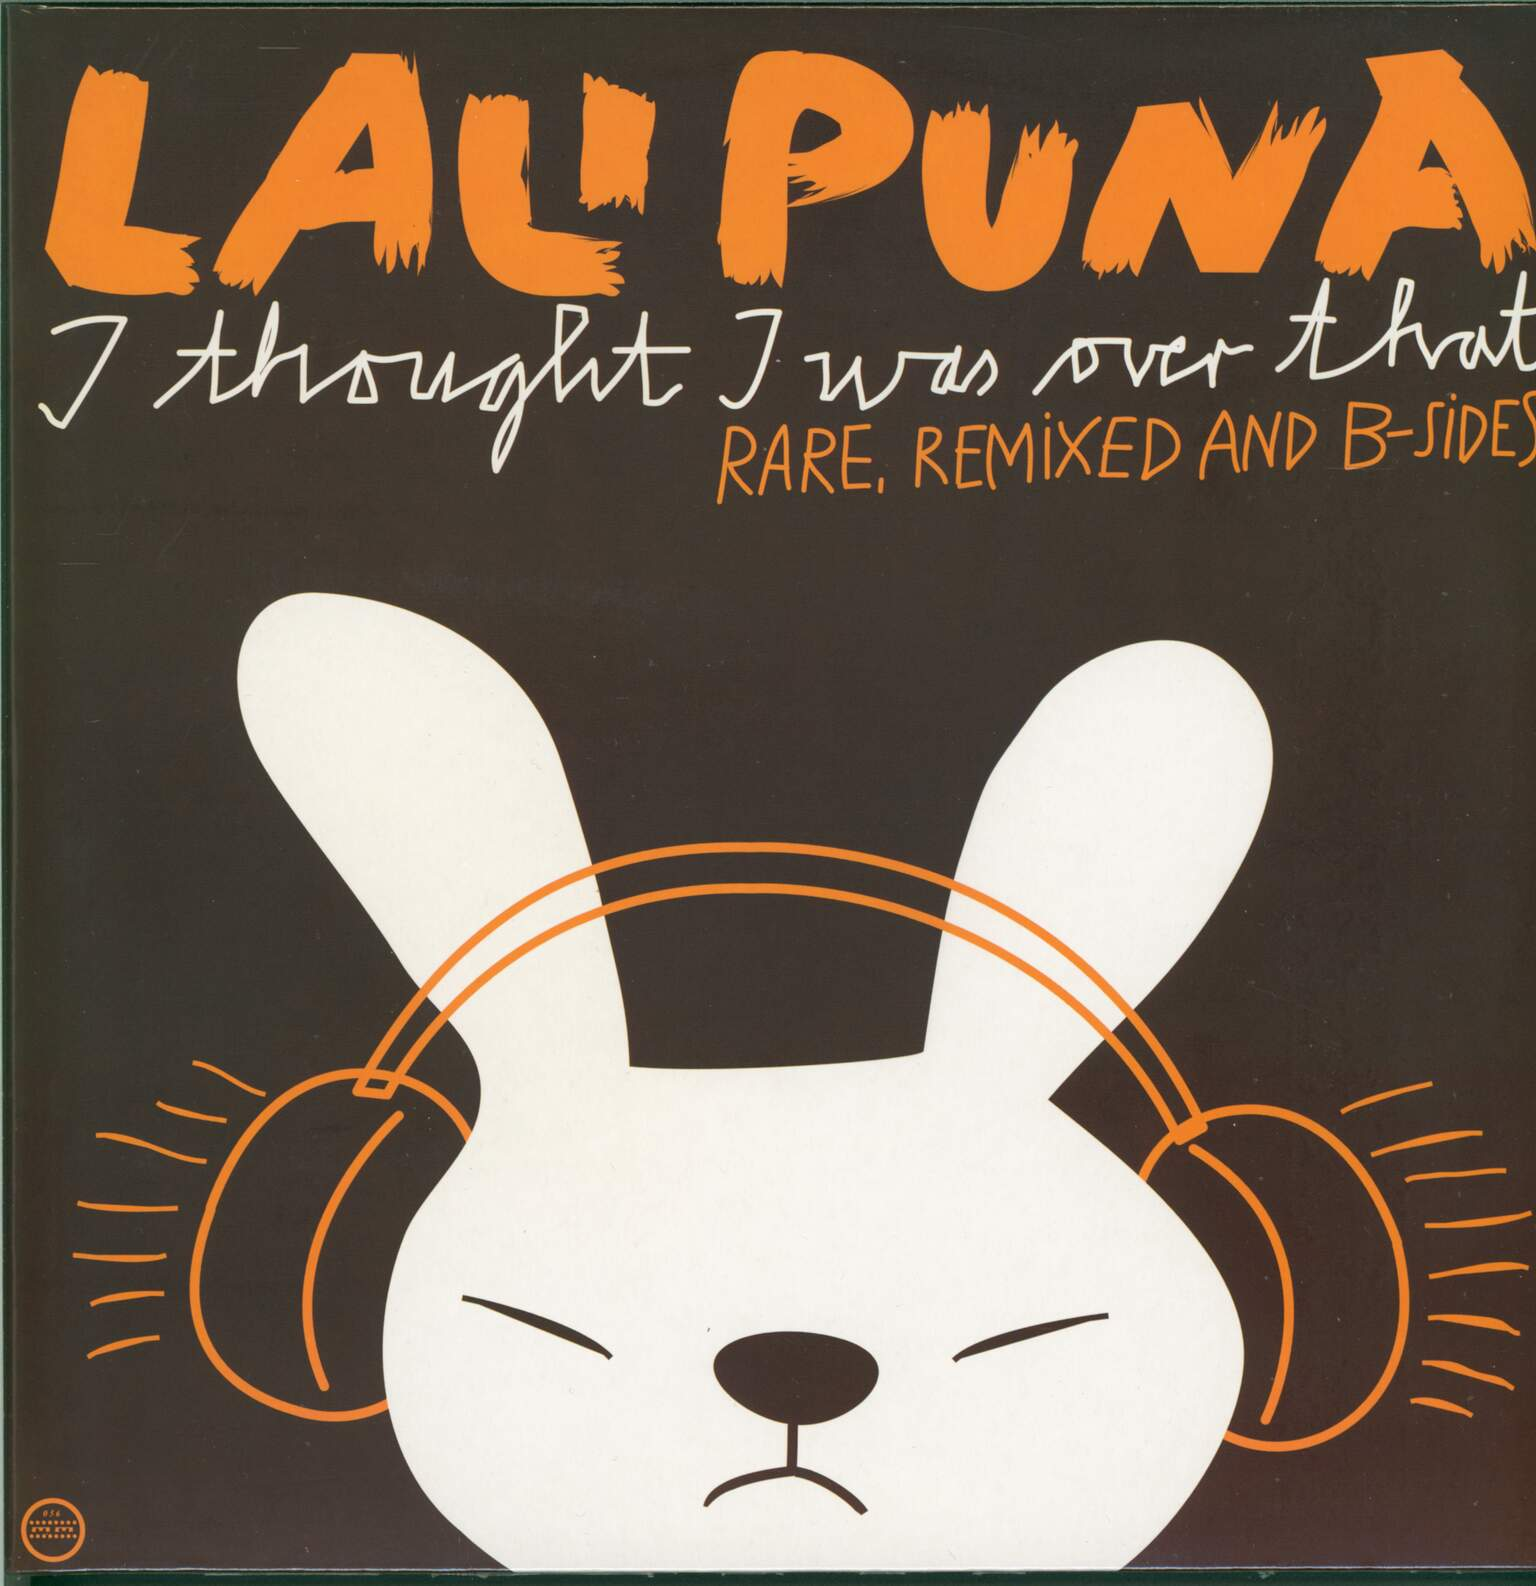 Lali Puna: I Thought I Was Over That: Rare, Remixed And B-Sides, 2×LP (Vinyl)